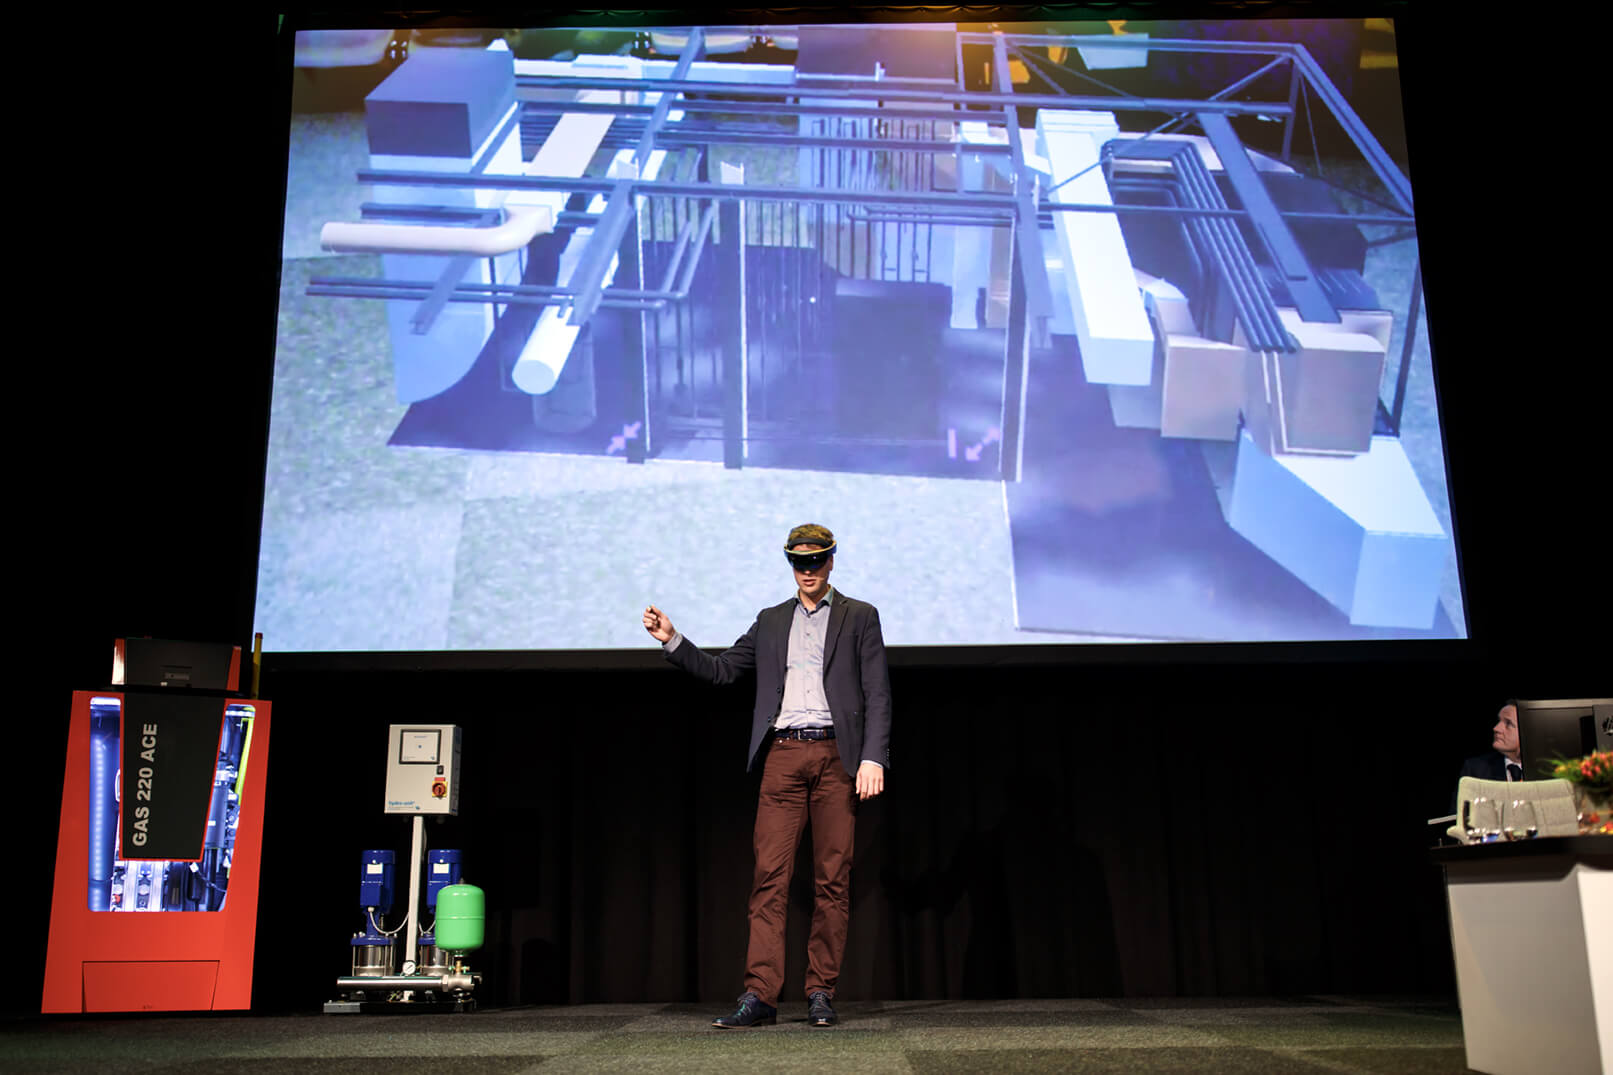 5 BIM trends in the installation sector in 2017